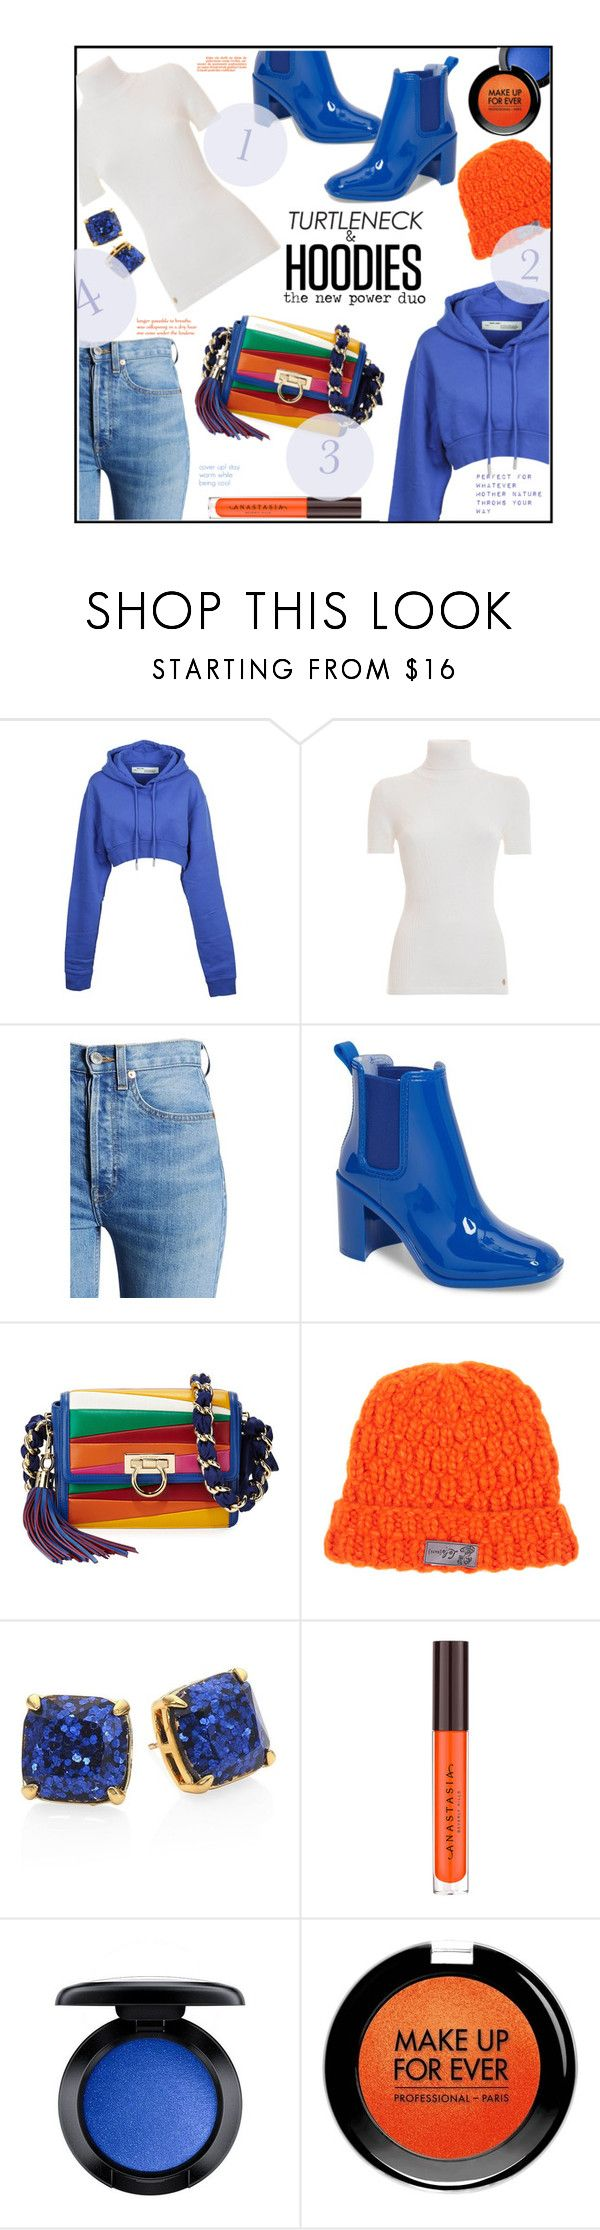 """""""Dynamic Duo"""" by jckallan ❤ liked on Polyvore featuring Off-White, RE/DONE, Jeffrey Campbell, Salvatore Ferragamo, Lola, Kate Spade, MAC Cosmetics, MAKE UP FOR EVER, Hoodies and turtleneck"""